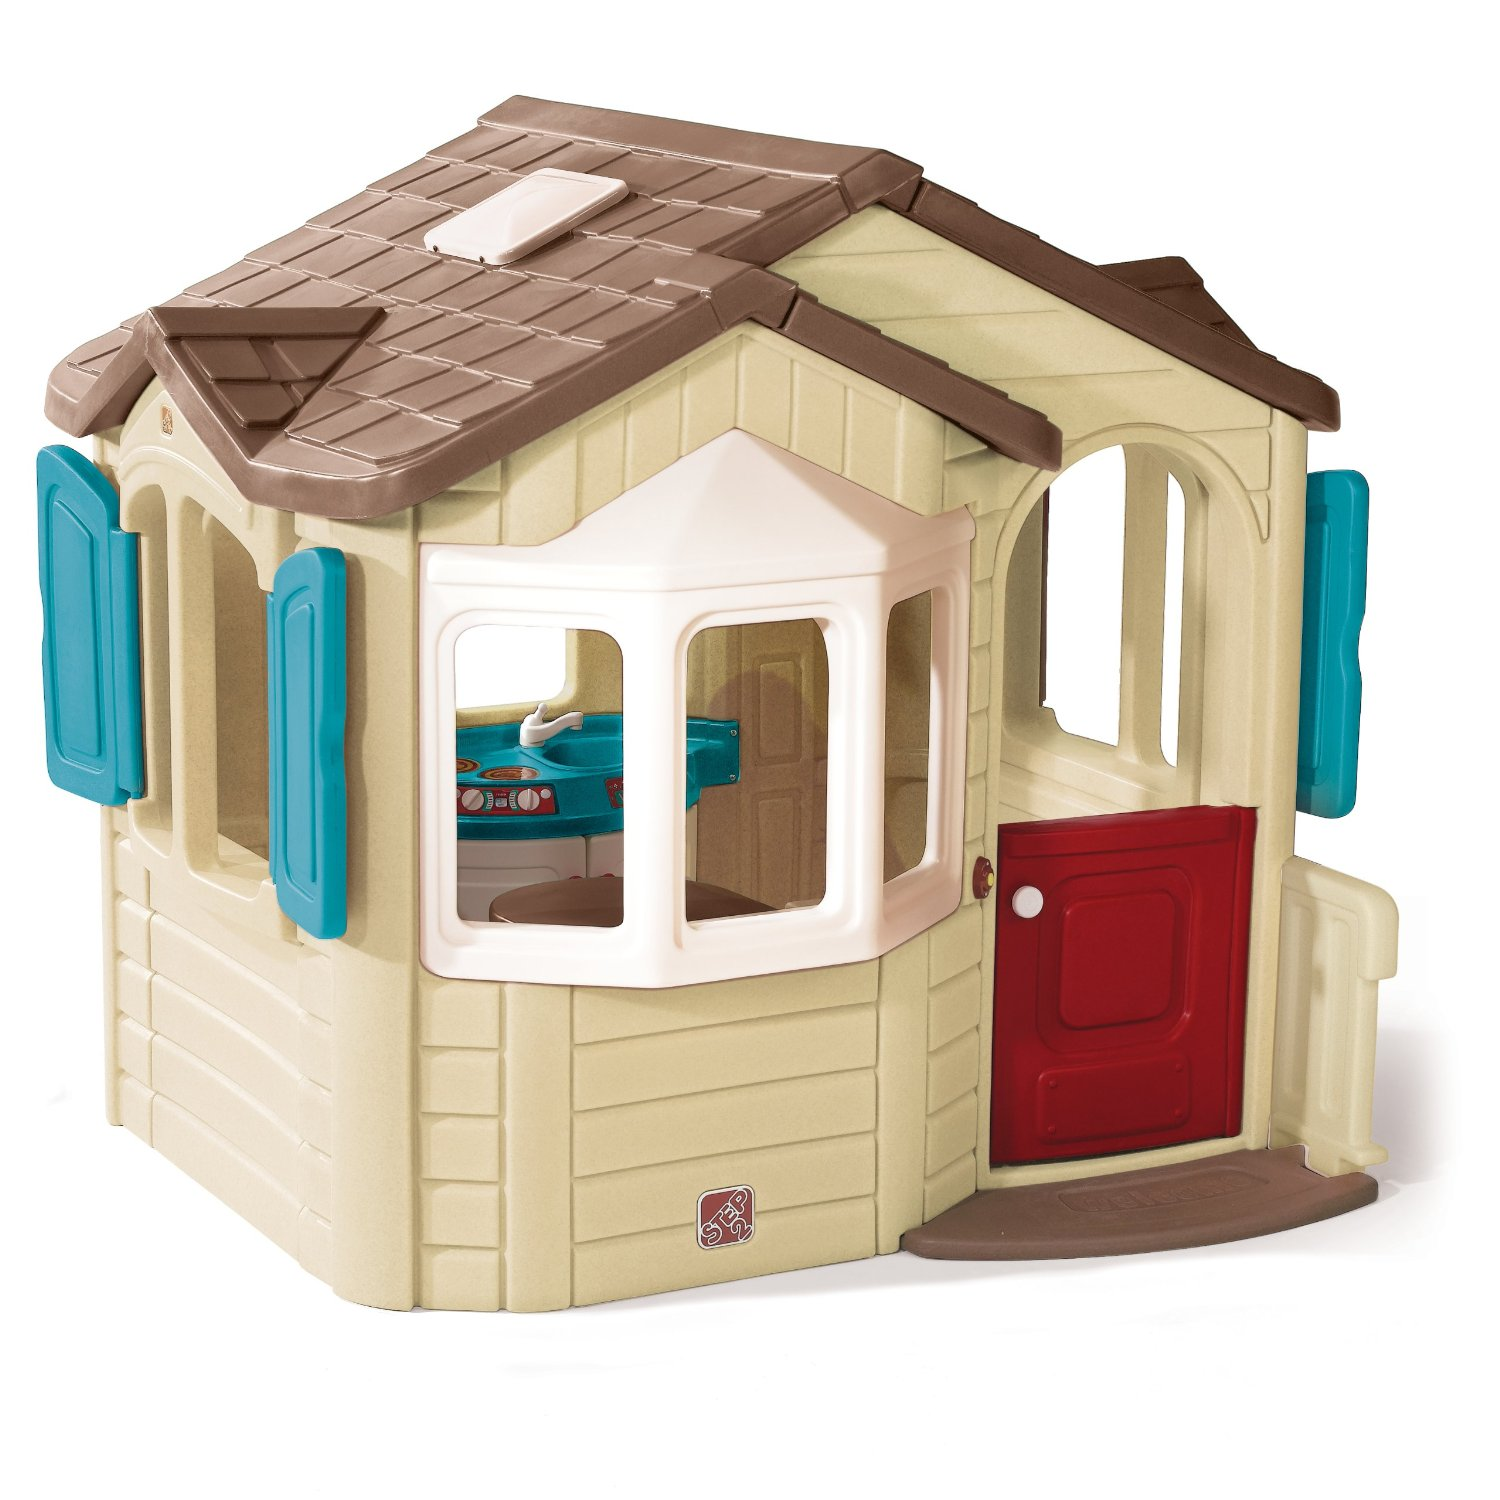 Total fab outdoor playhouse with kitchen inside for Casitas de jardin de plastico